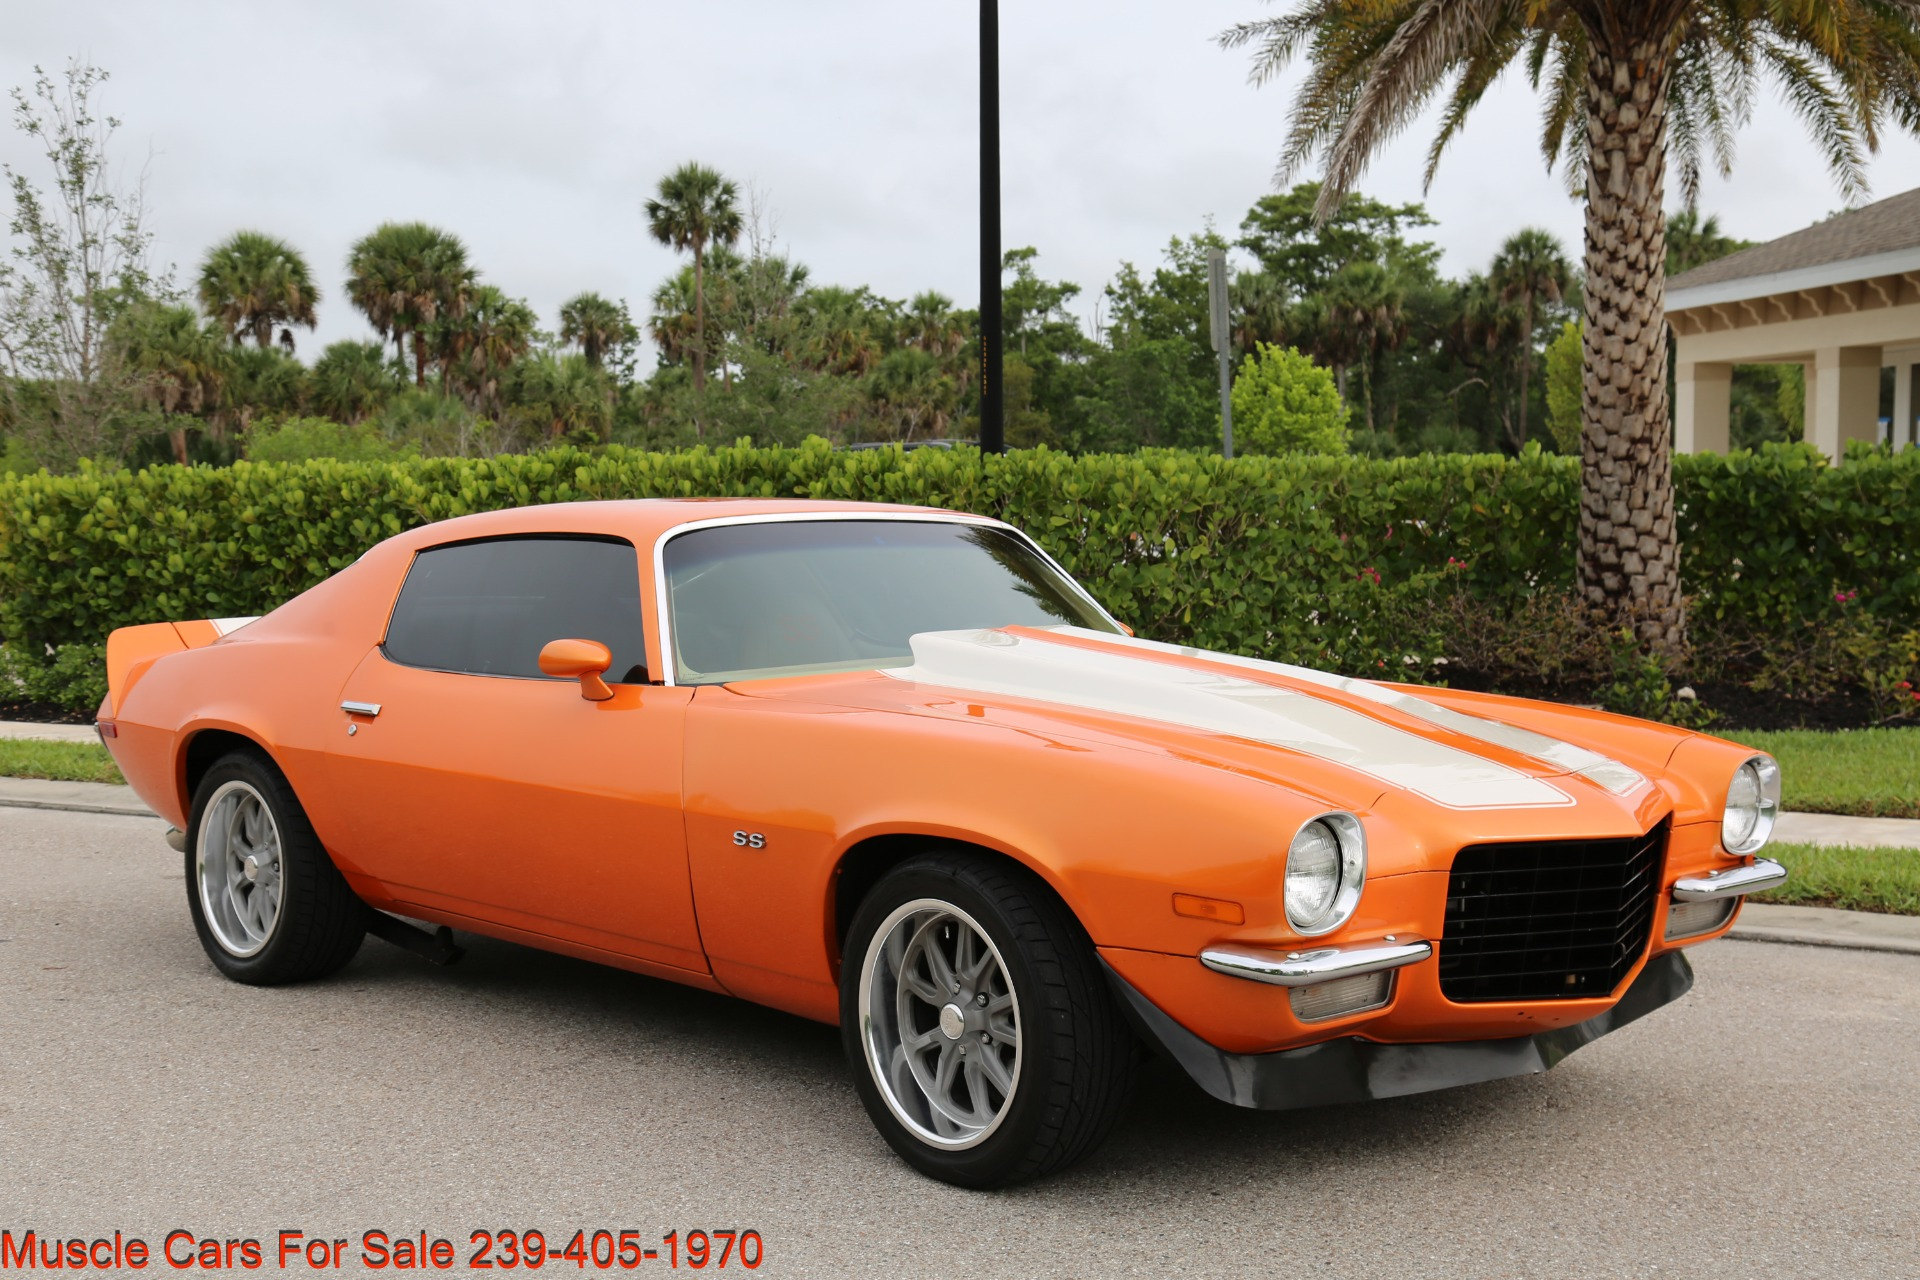 used 1973 chevrolet camaro v8 auto for sale 24 000 muscle cars for sale inc stock 2025 used 1973 chevrolet camaro v8 auto for